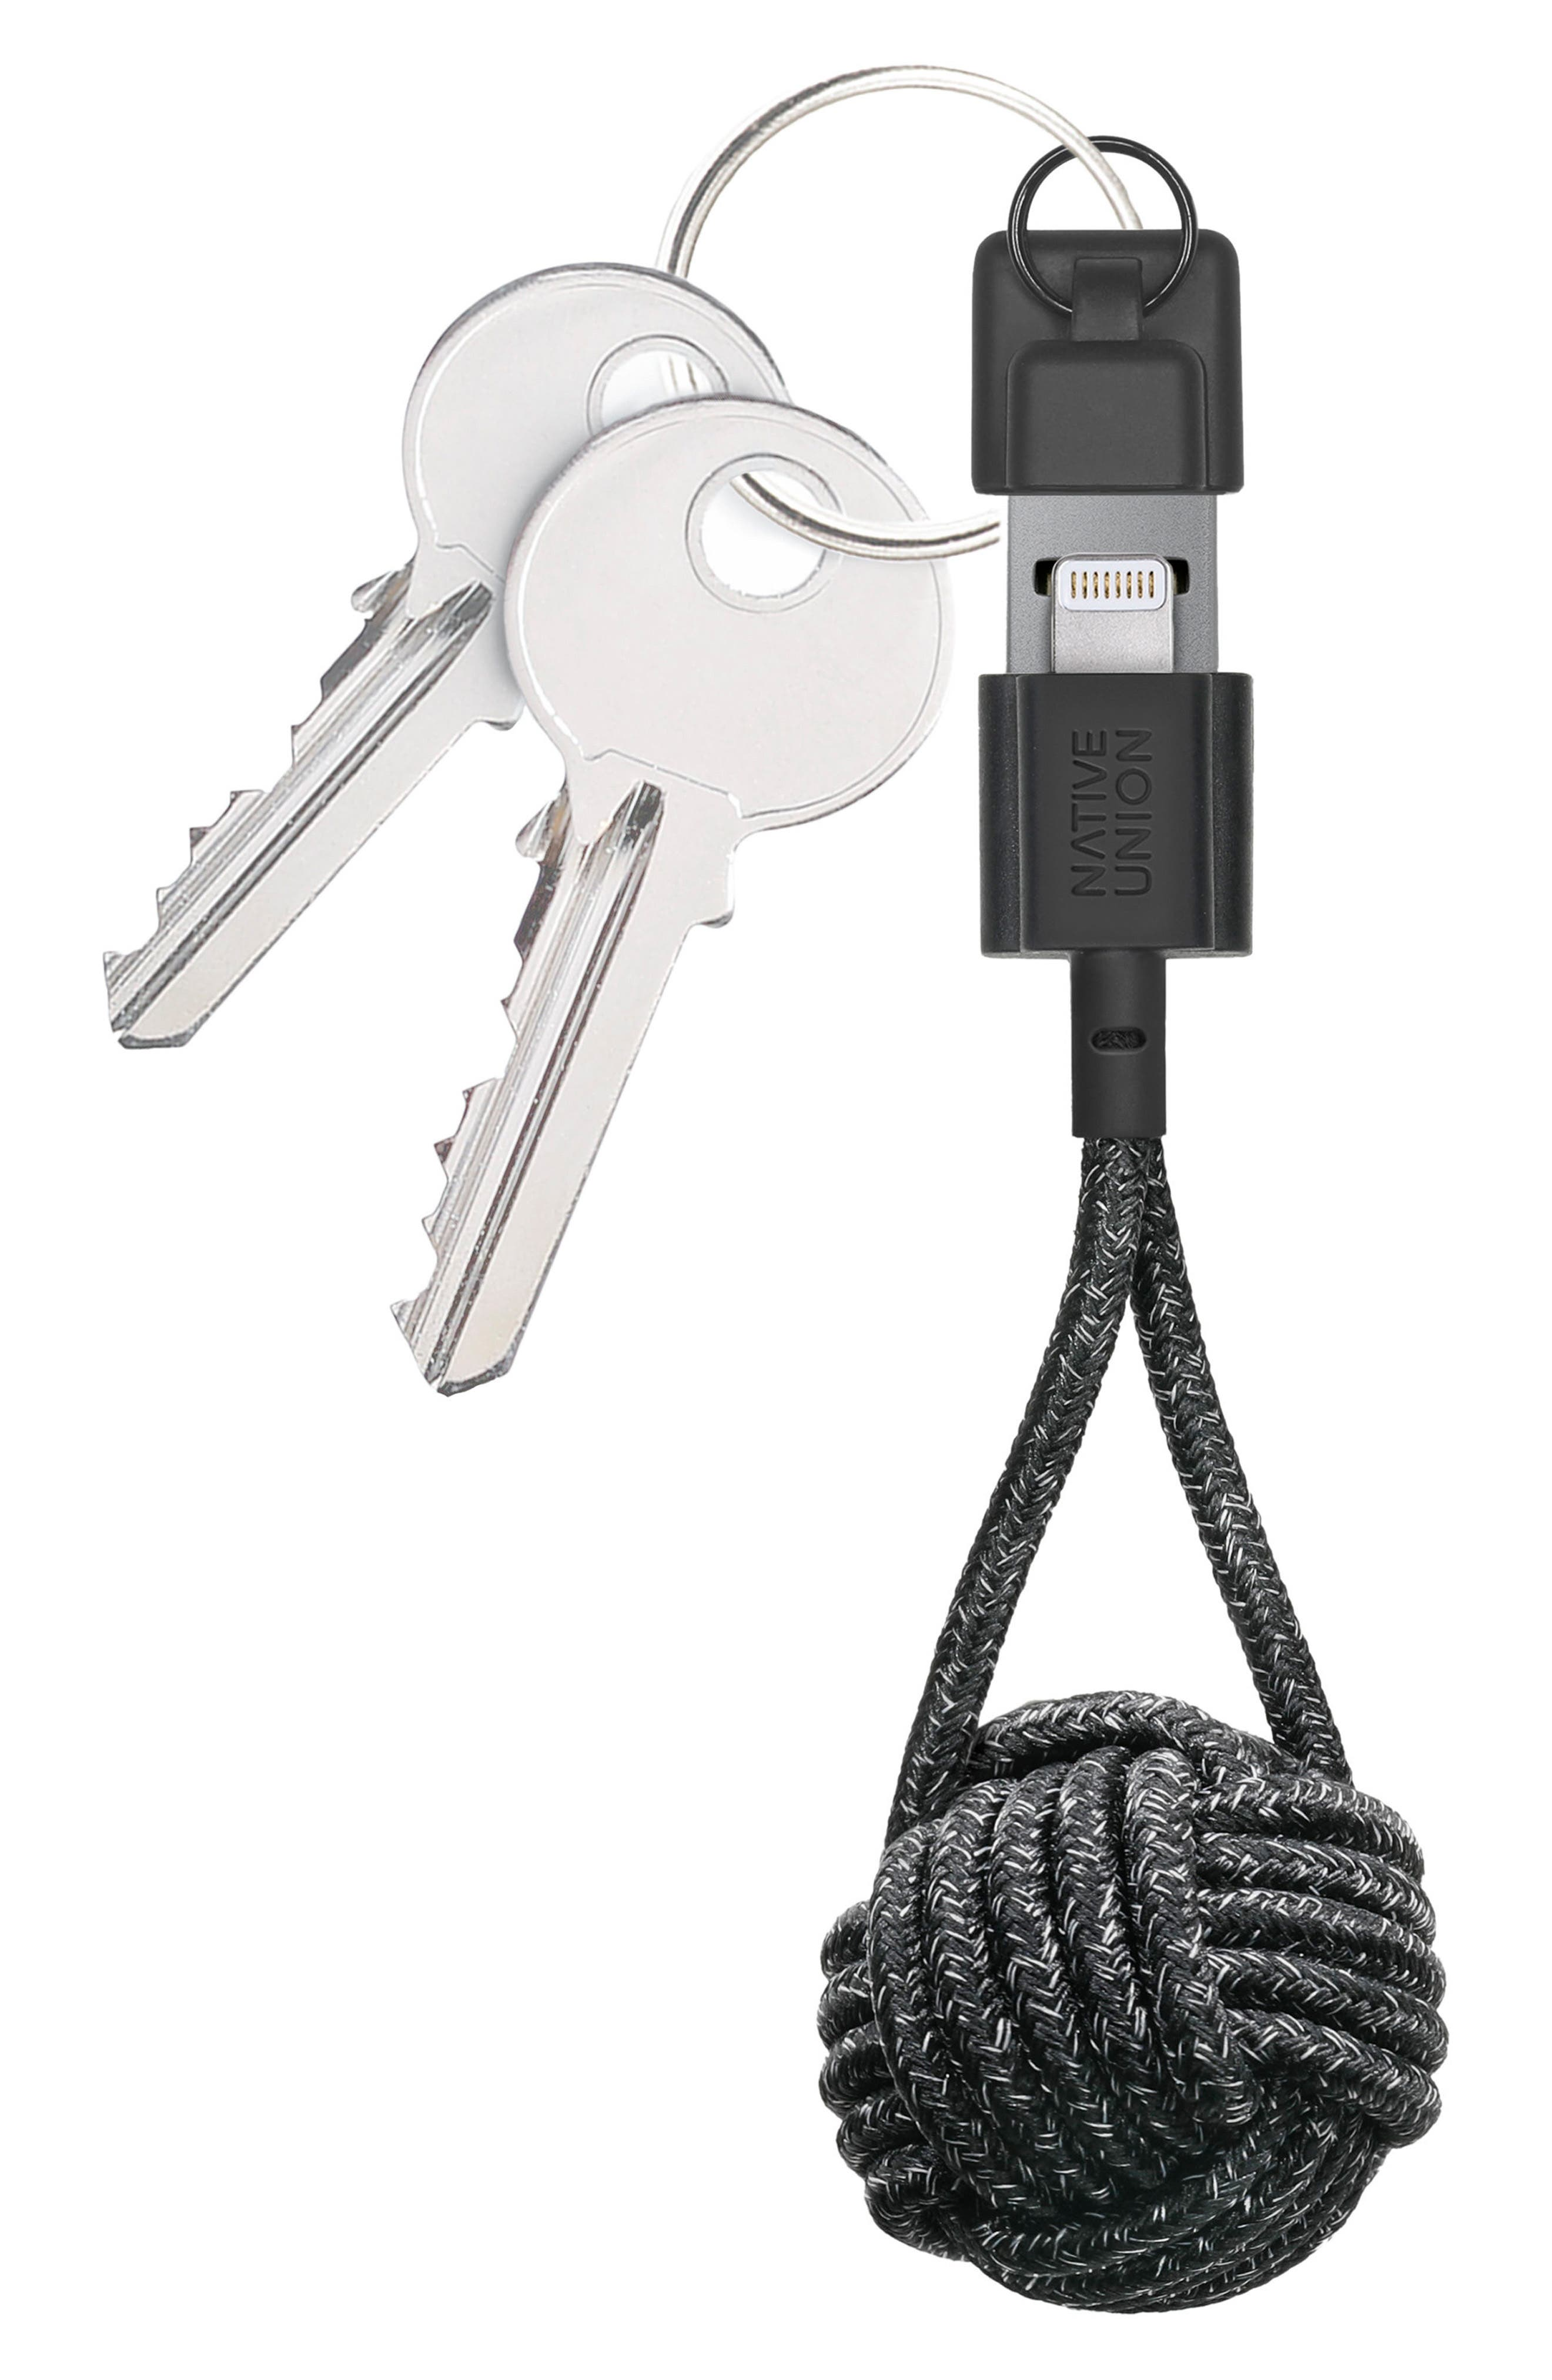 Native Union KEY Lightning Charging Cable Key Chain